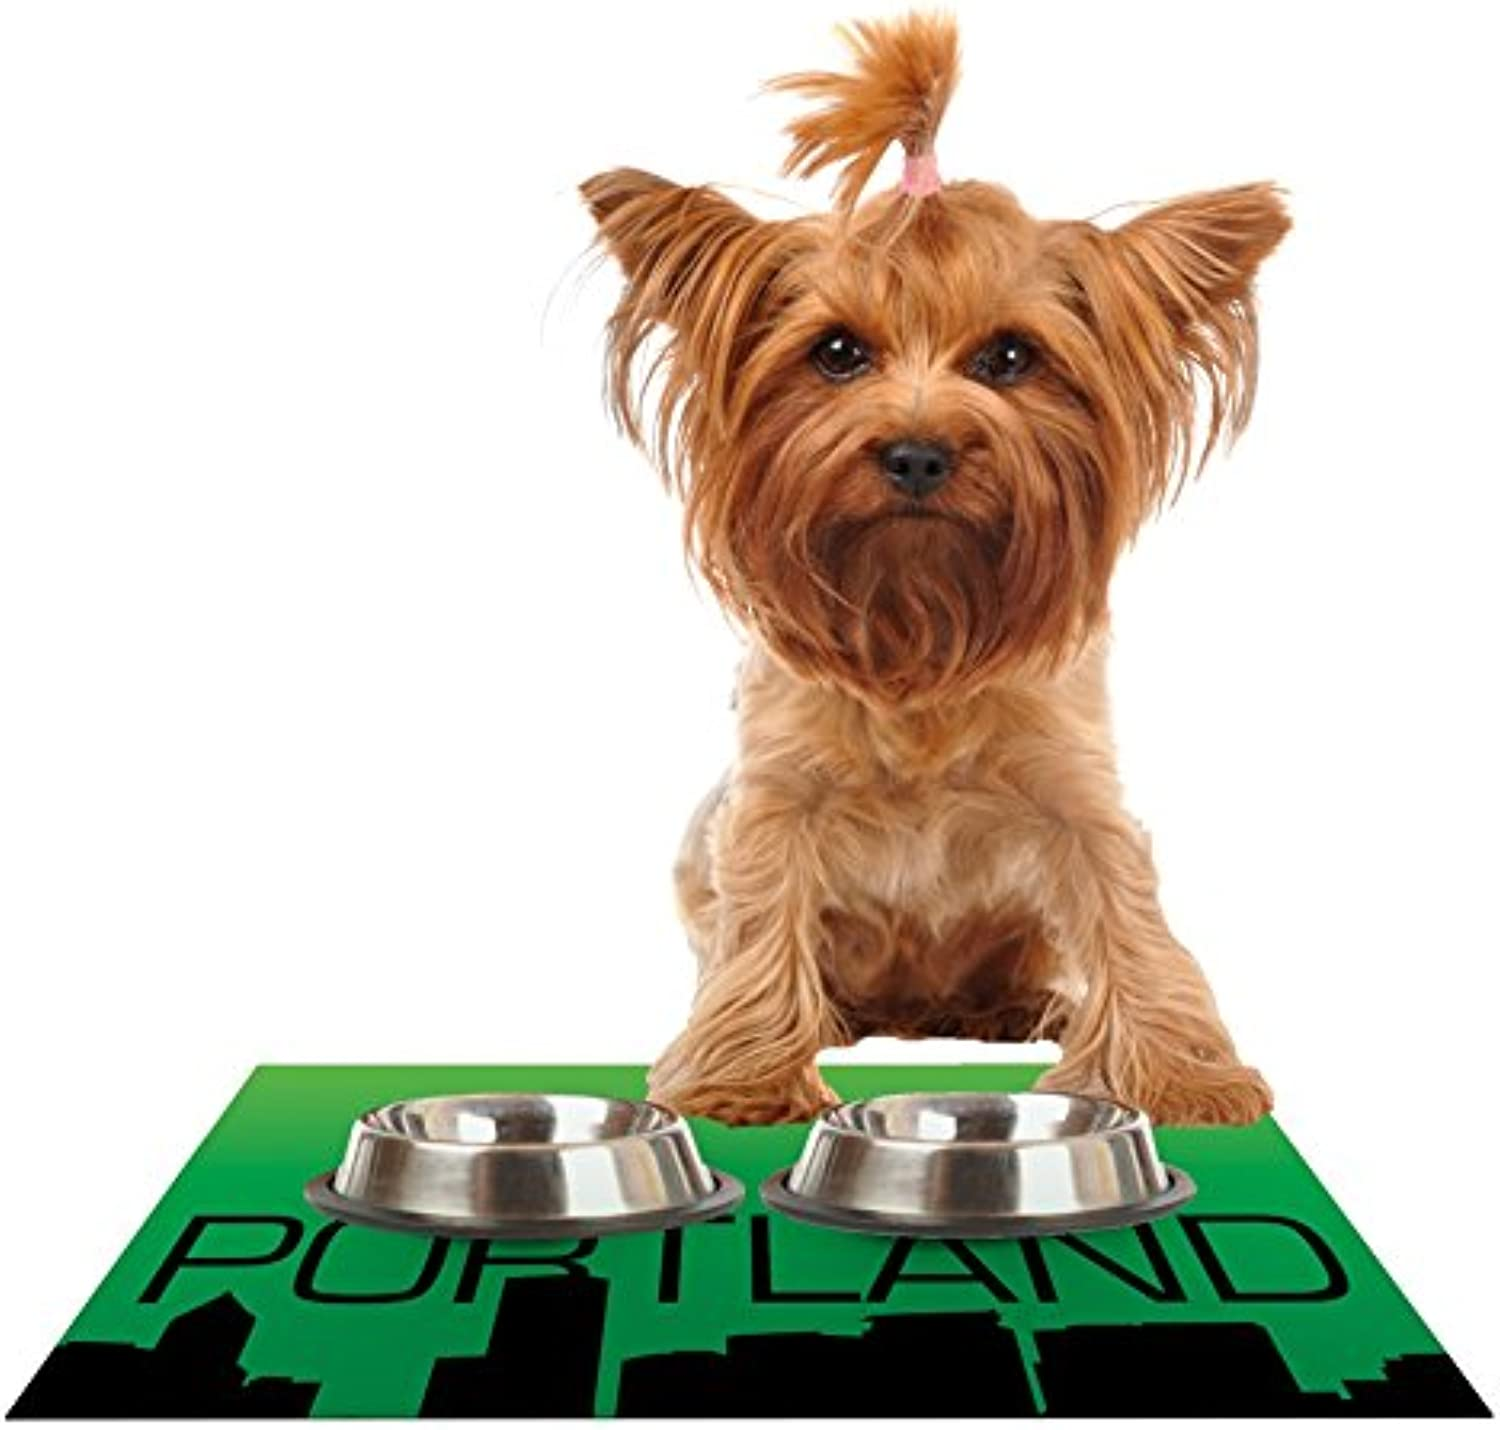 KESS InHouse KESS Original Portland  Green Black Feeding Mat for Pet Bowls, 24 by 15Inch